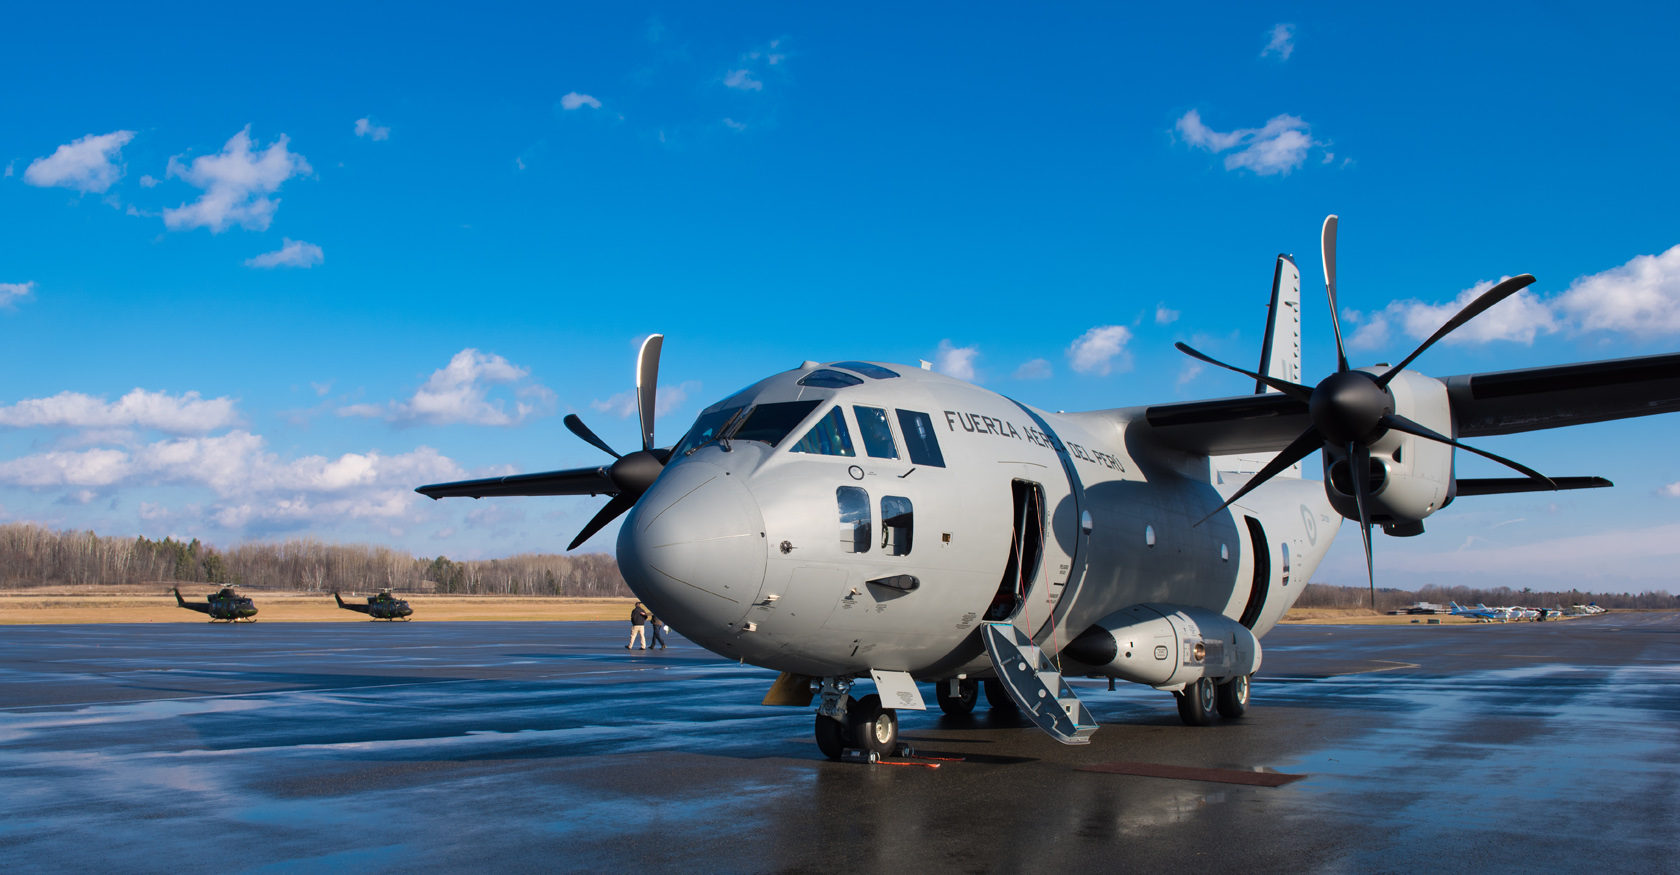 Esprit de Corps was able to get up close and personal inside Team Spartan's C-27J aircraft in December 2015 during a stop at the Gatineau Airport. On December 8, 2016 the Government of Canada announced that Airbus Defence and Space's C295W had won the fixed-wing search and rescue contract. One month later, competitor Team Spartan filed an application for a judicial review. (Photo by Richard Lawrence)